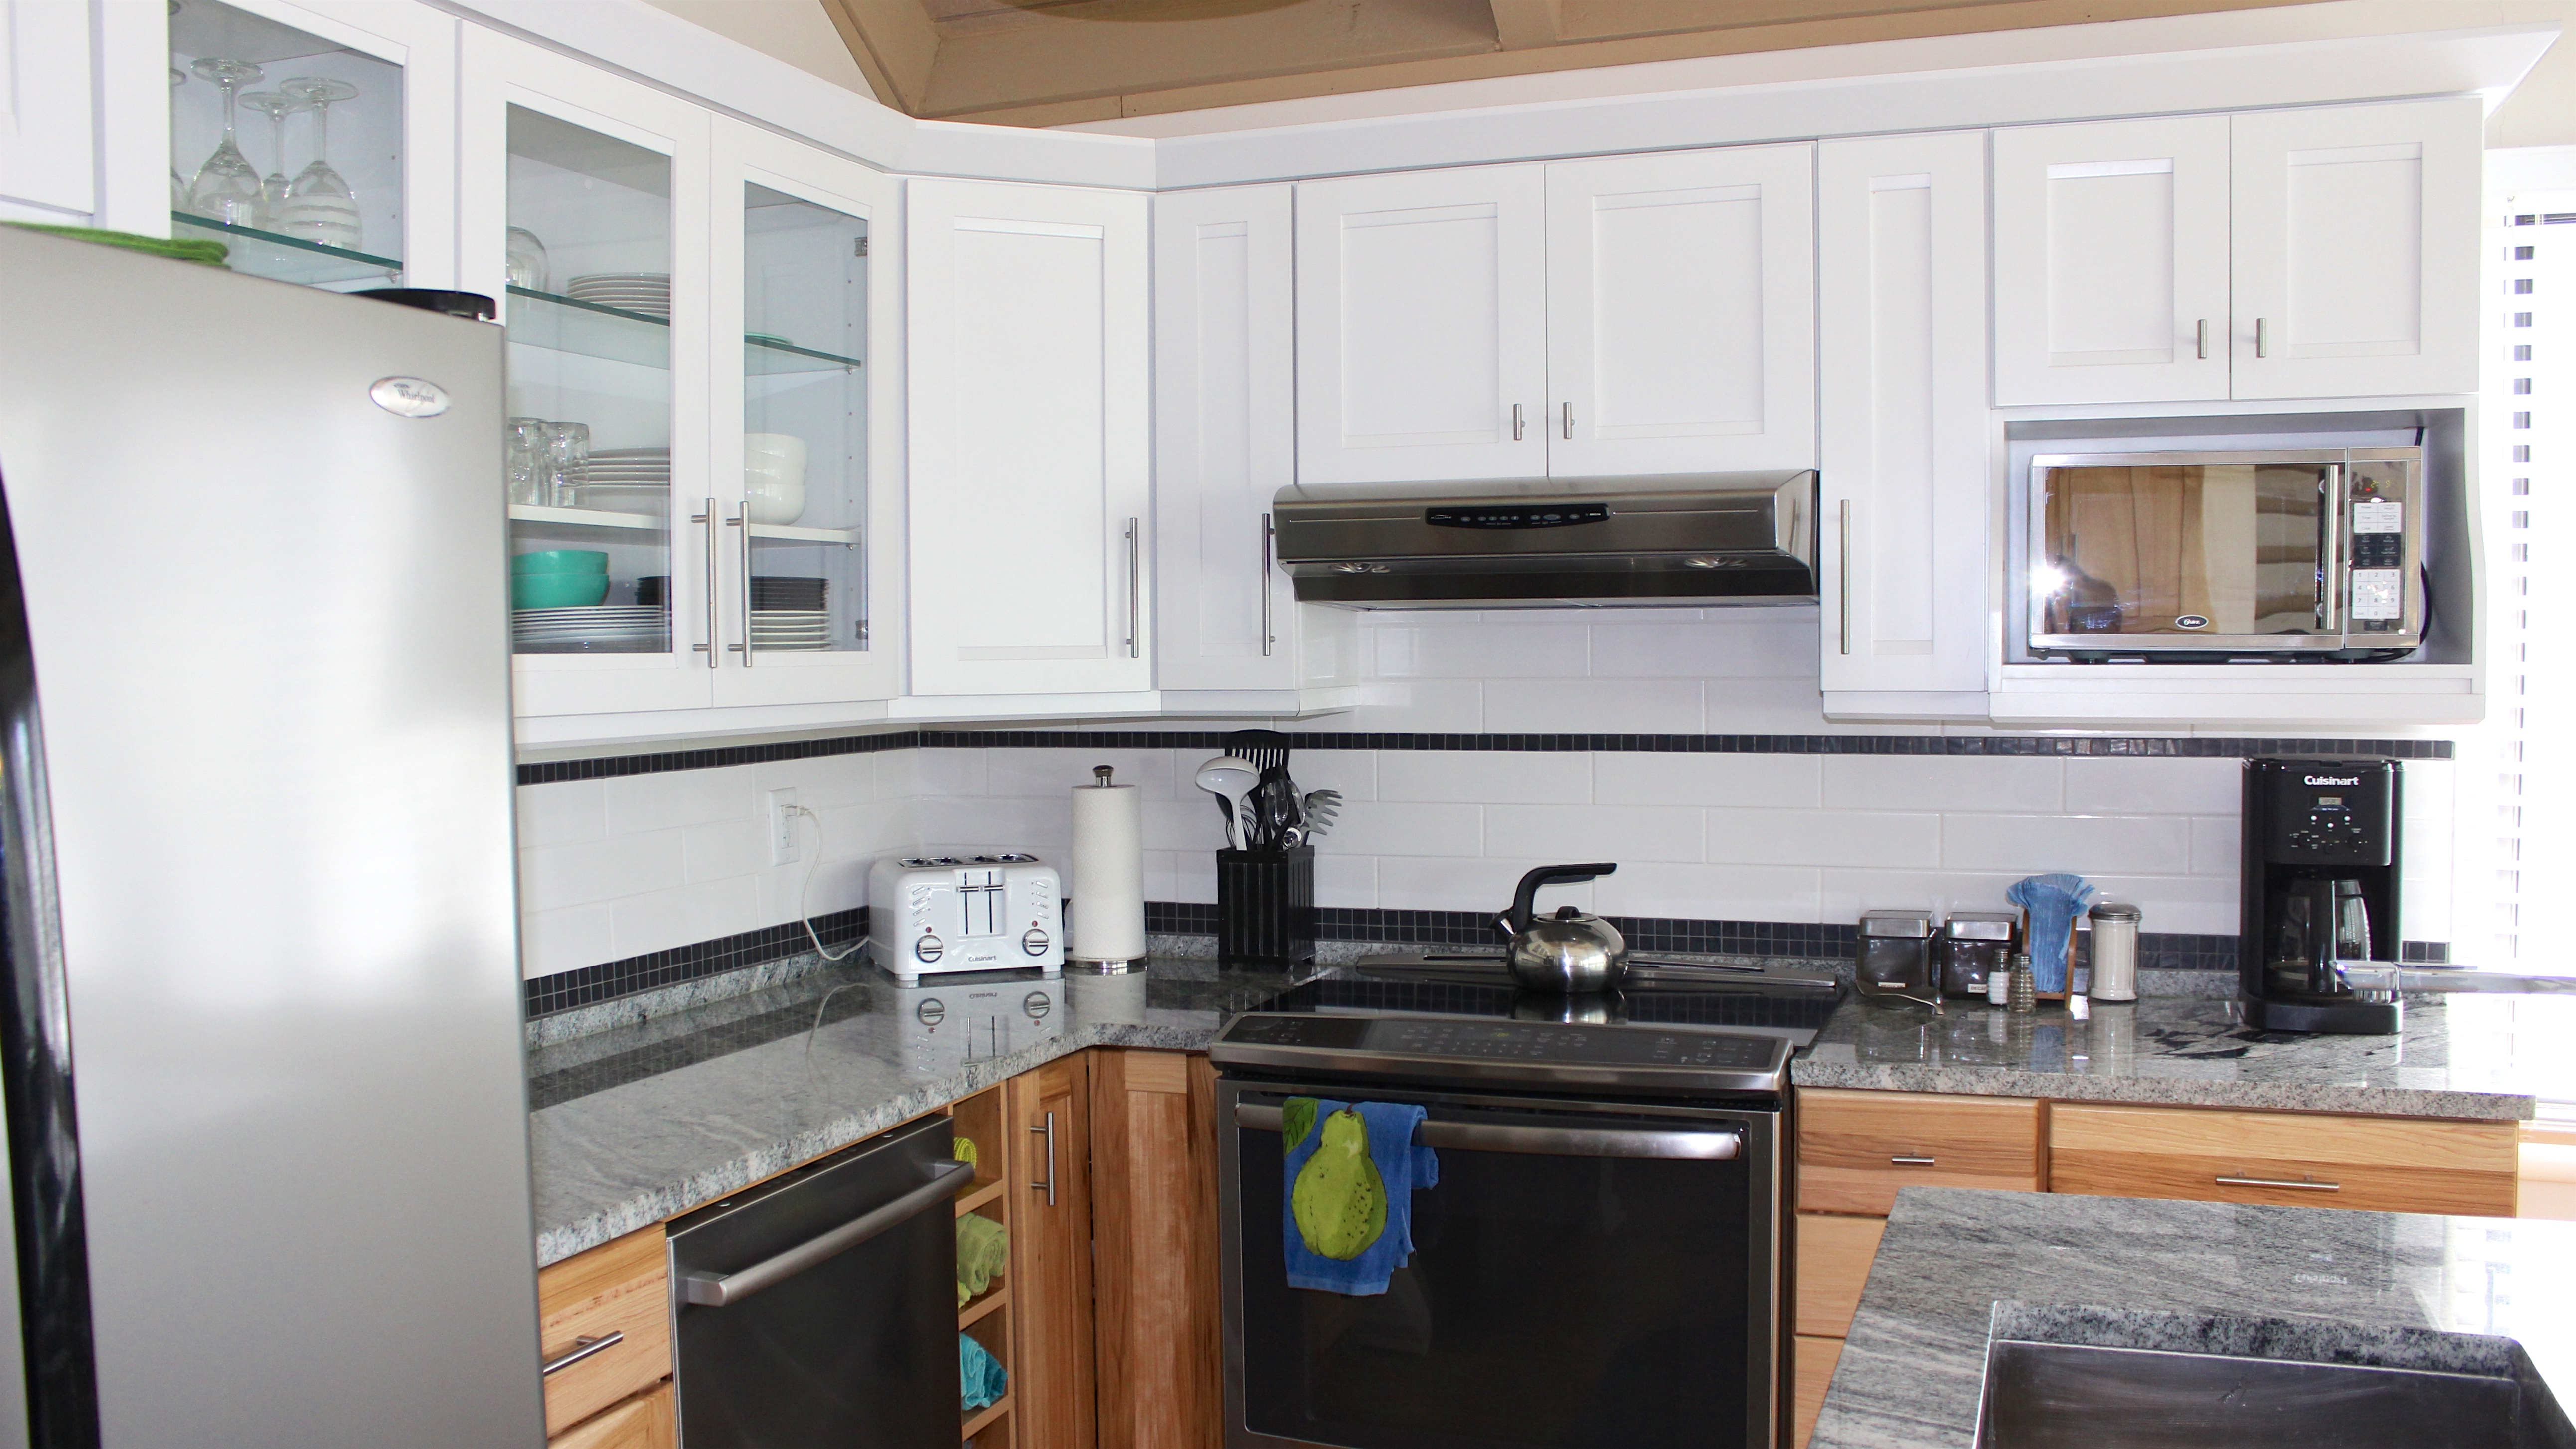 It has a drop-in stove, top of the line dishwasher, & glass accent cabinets.